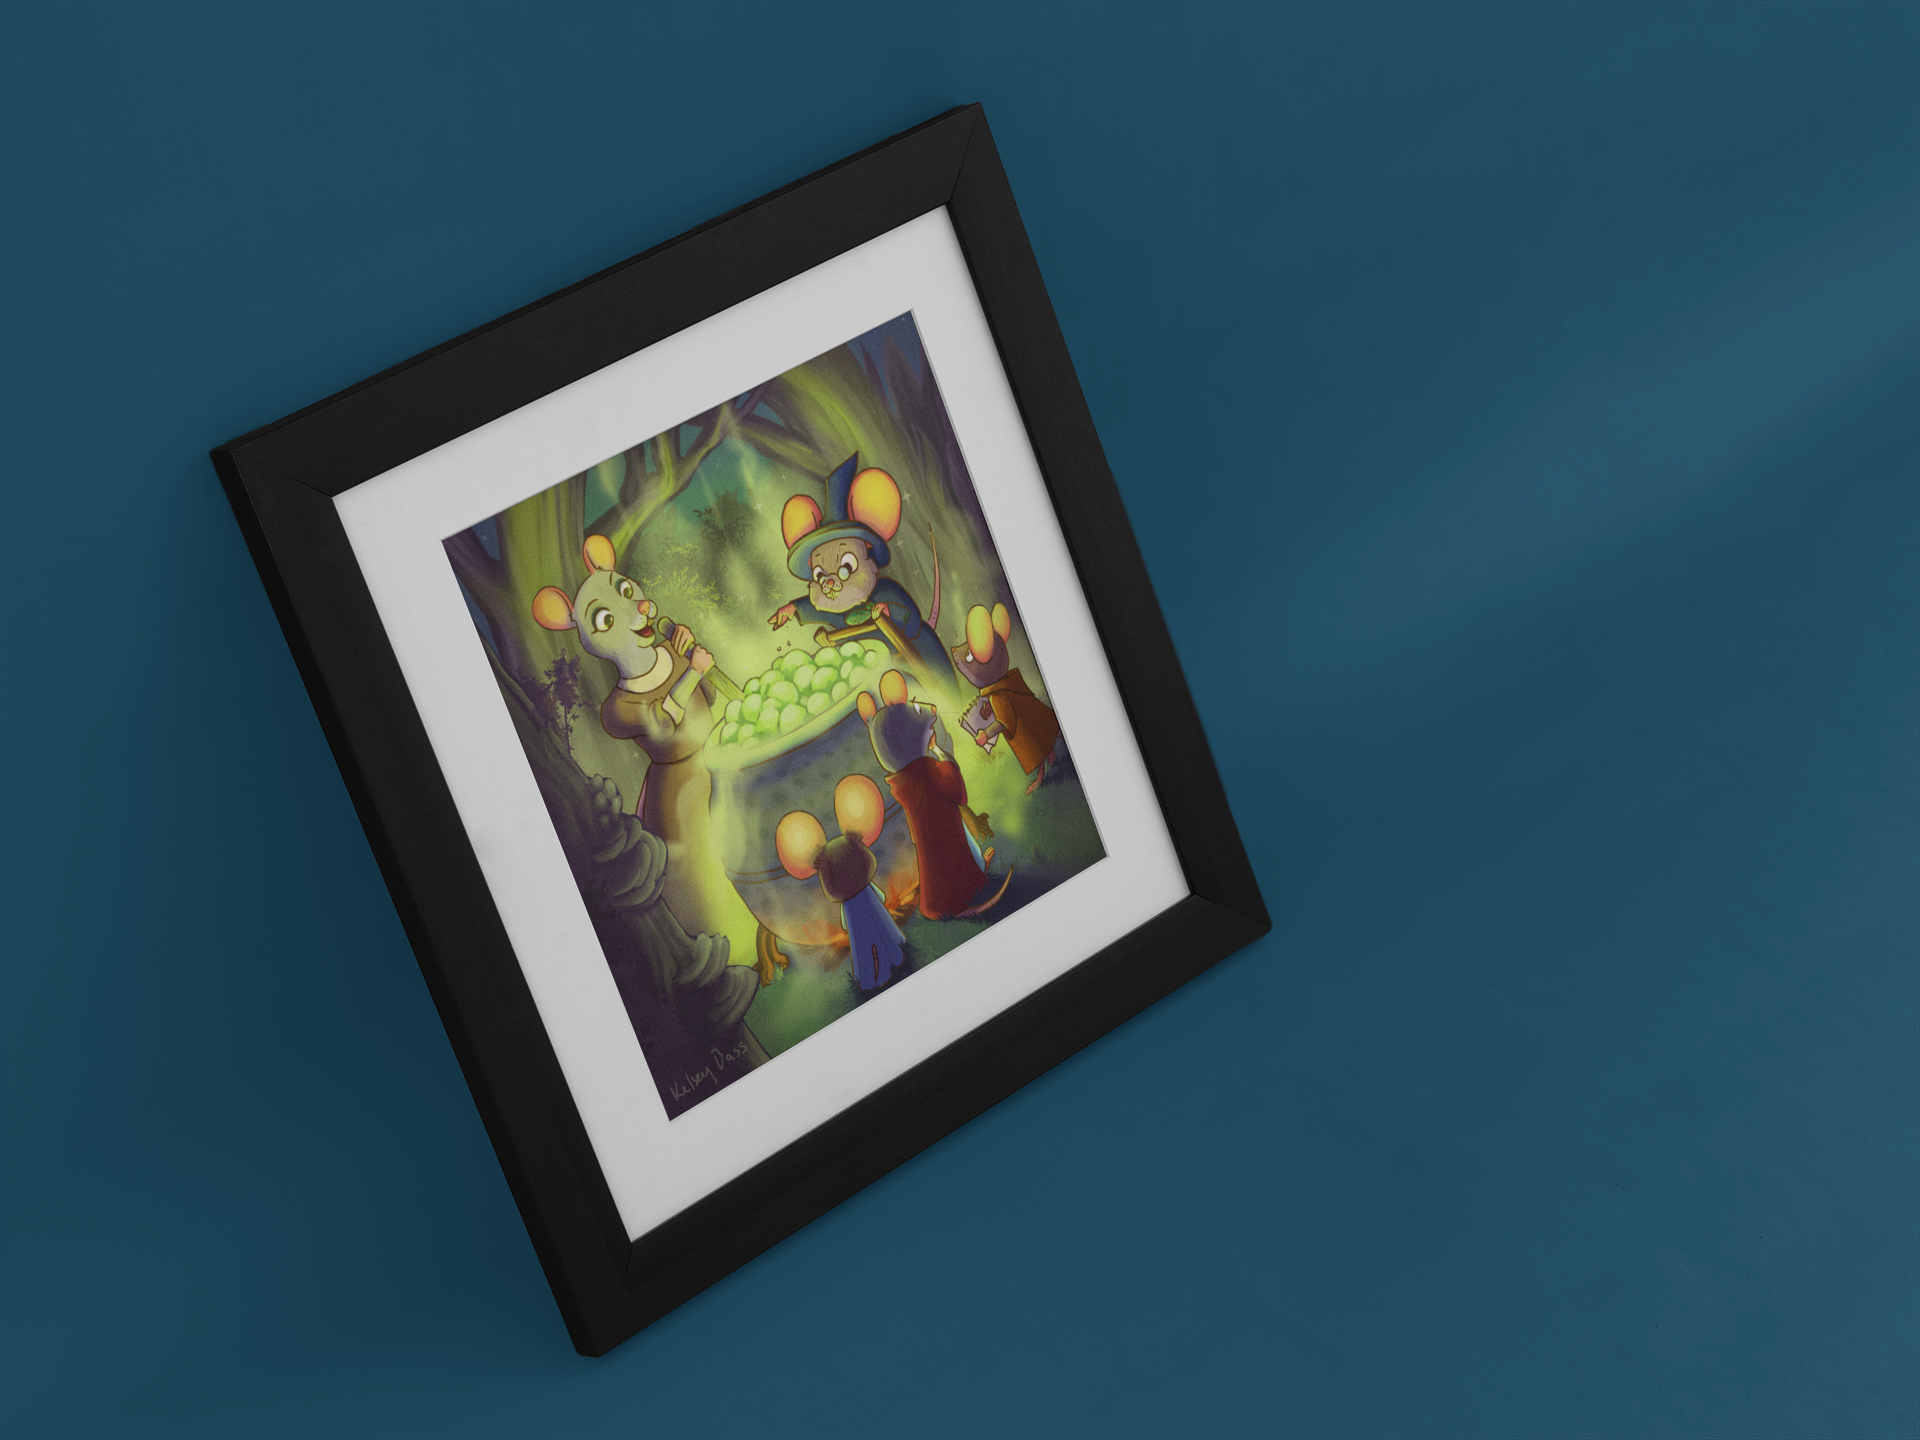 mockup-of-an-angled-art-print-on-a-pastel-color-wall-a15283.png